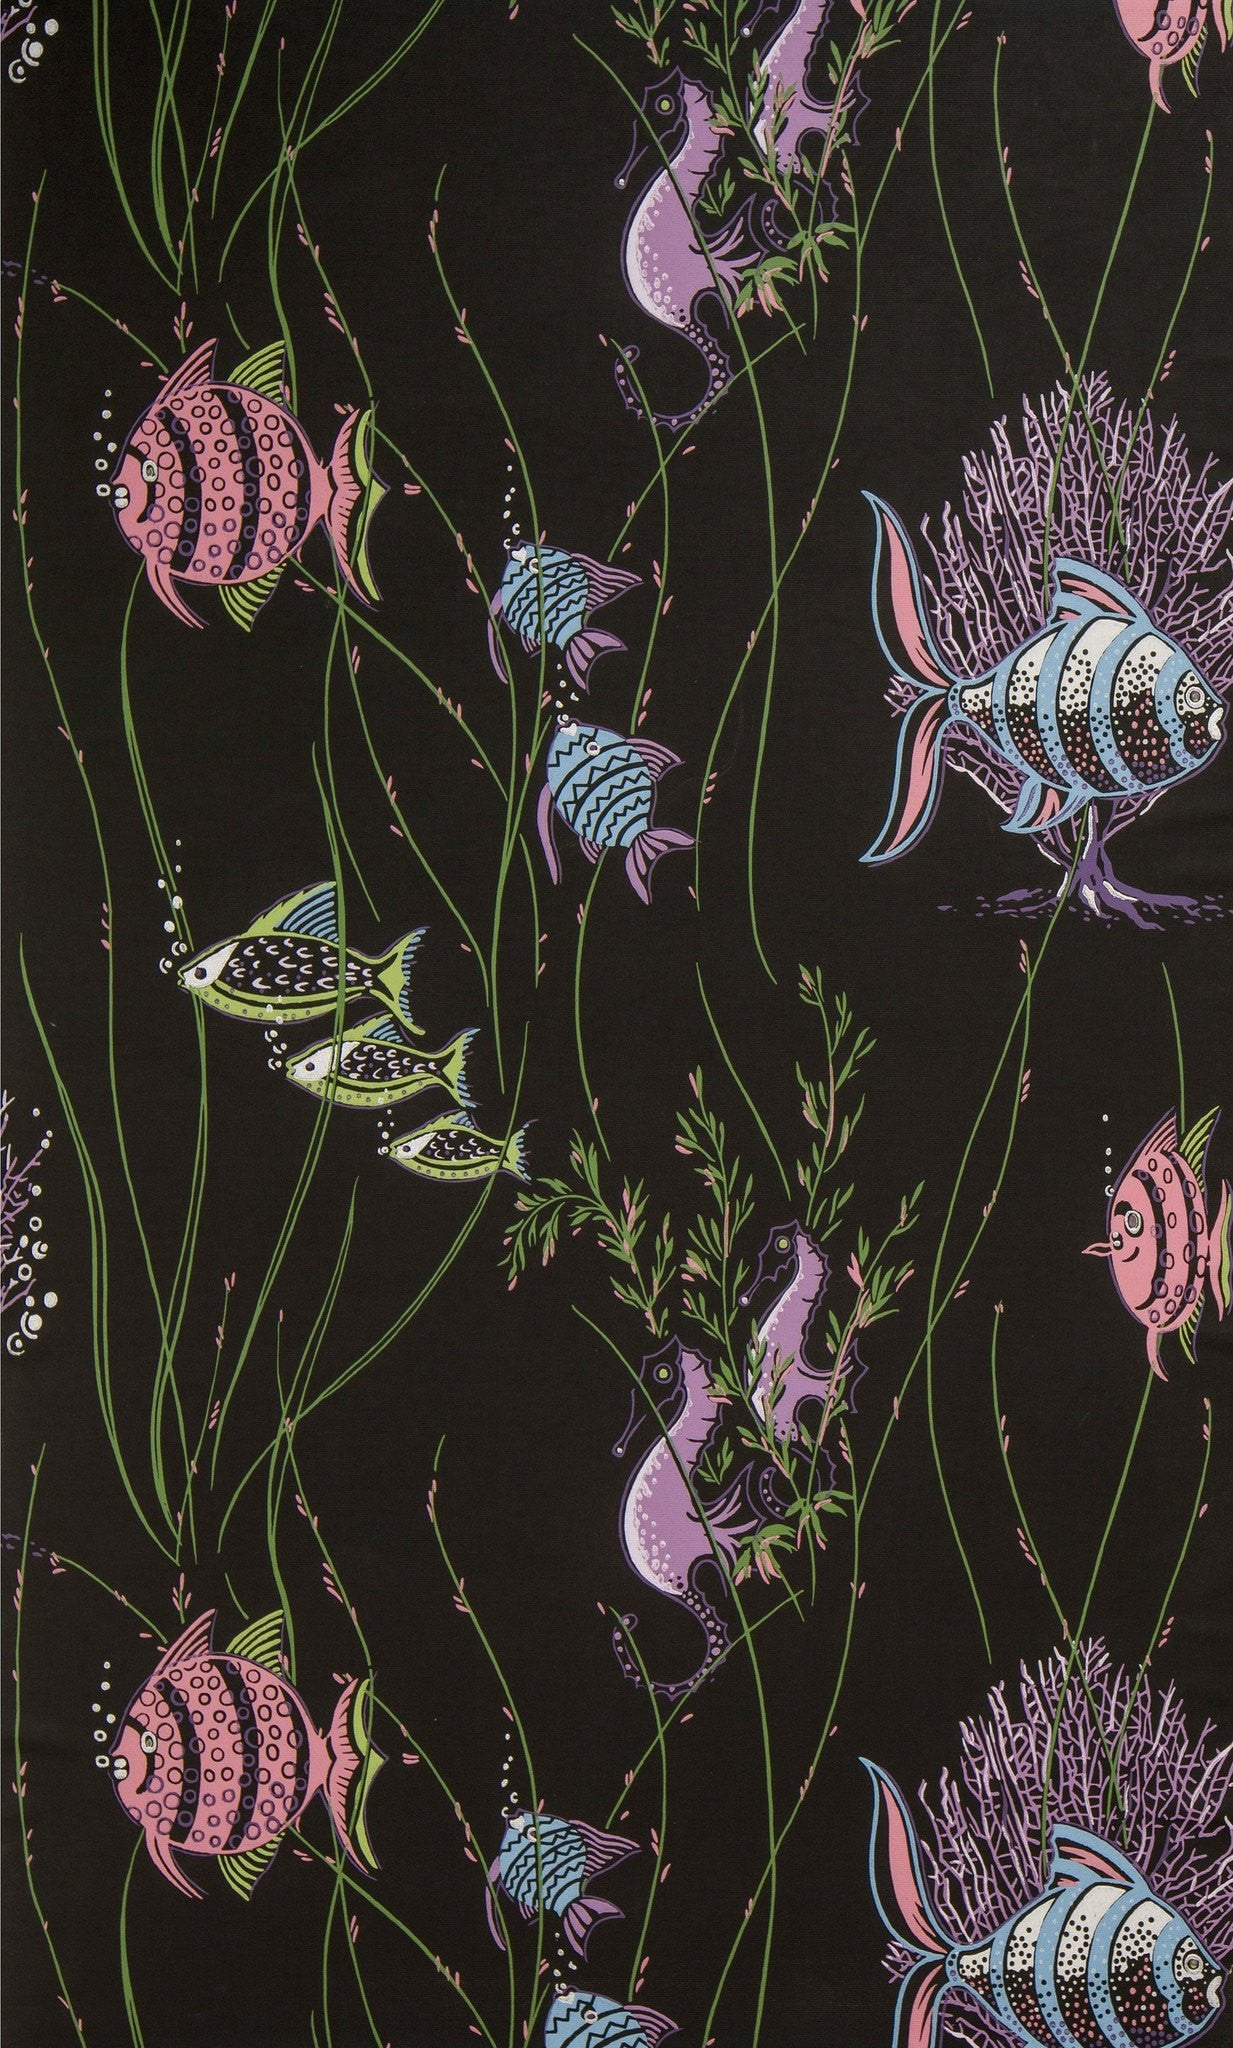 Aquatic Scene With Fish And Seaweed Vintage Wallpaper Bolling Company